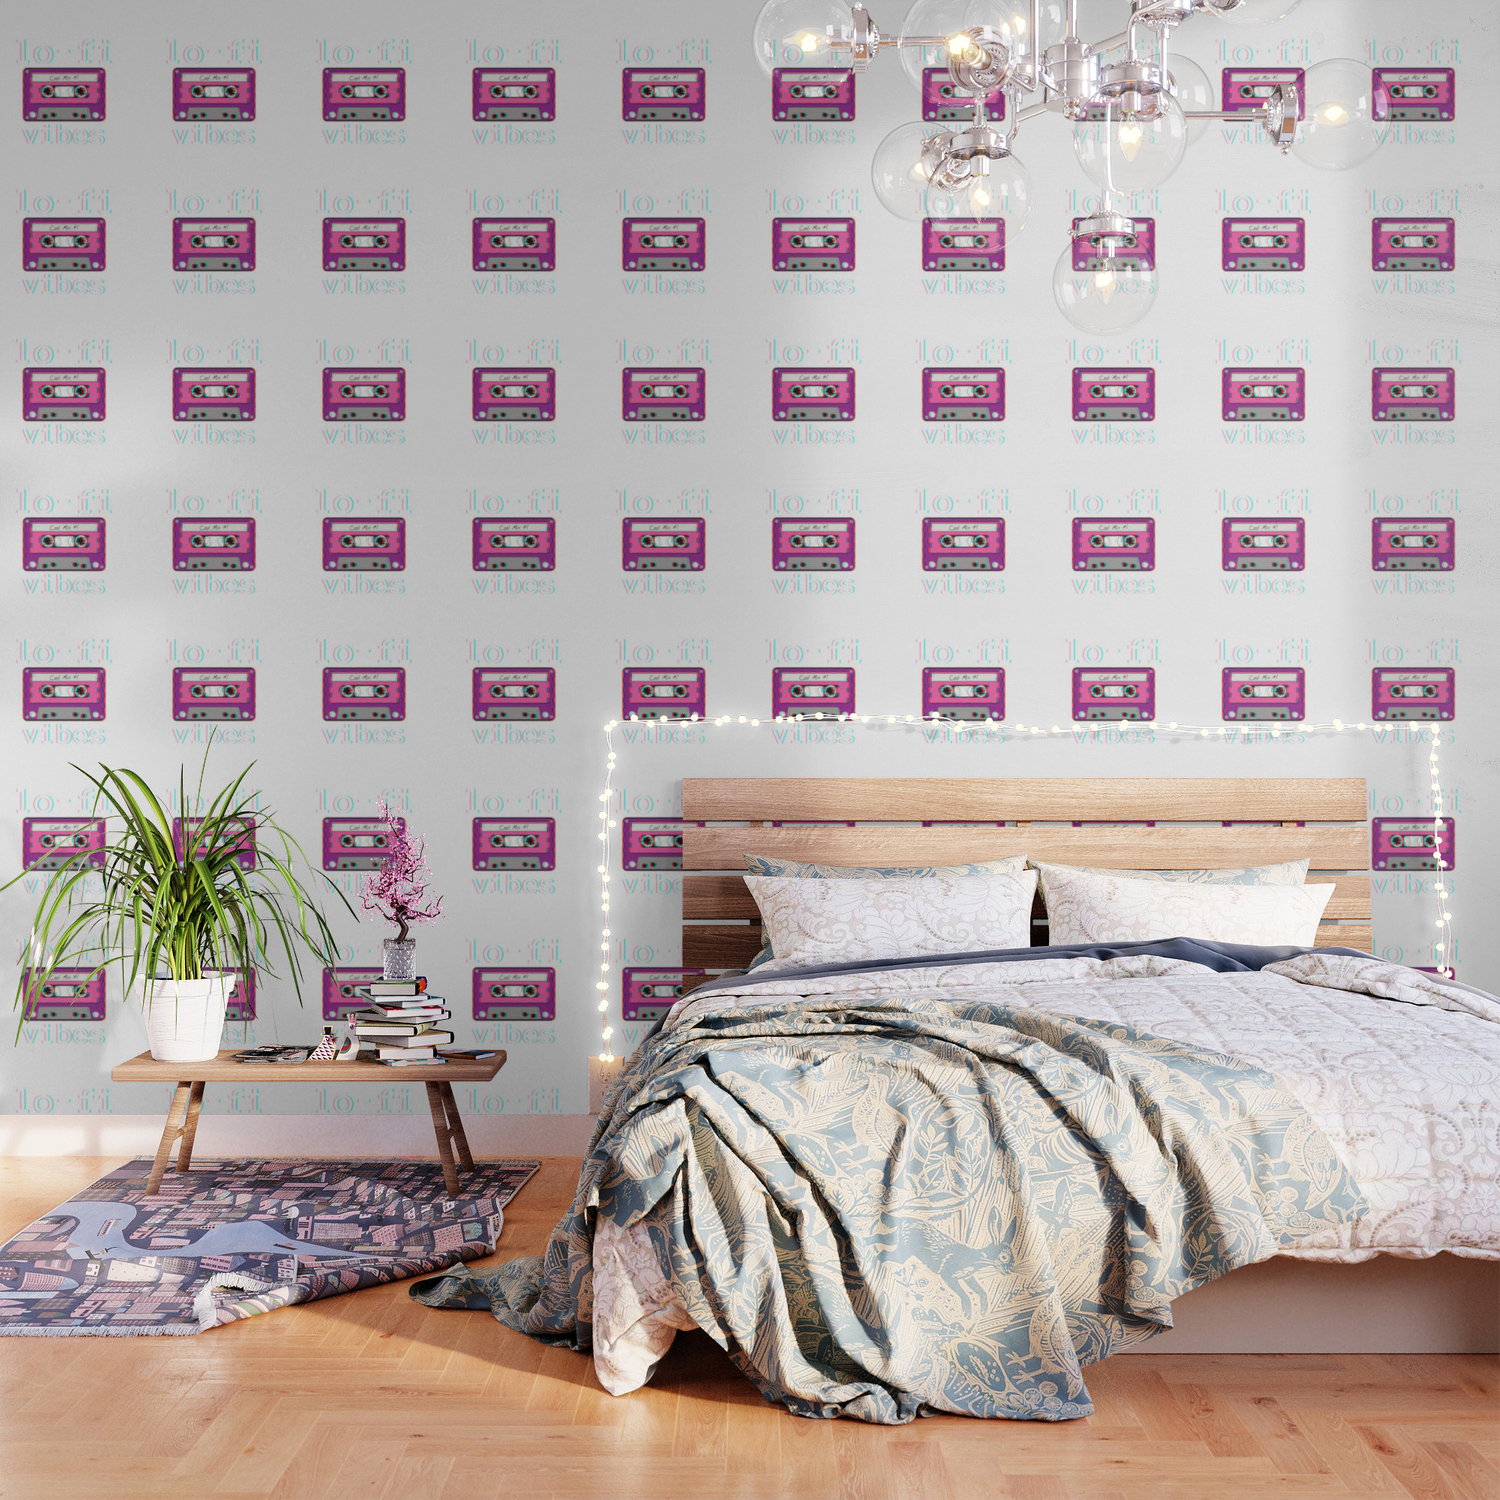 Low Fidelity Music Product Aesthetic Tape Lo Fi Vibes Design Wallpaper By Dc Designstudio Society6